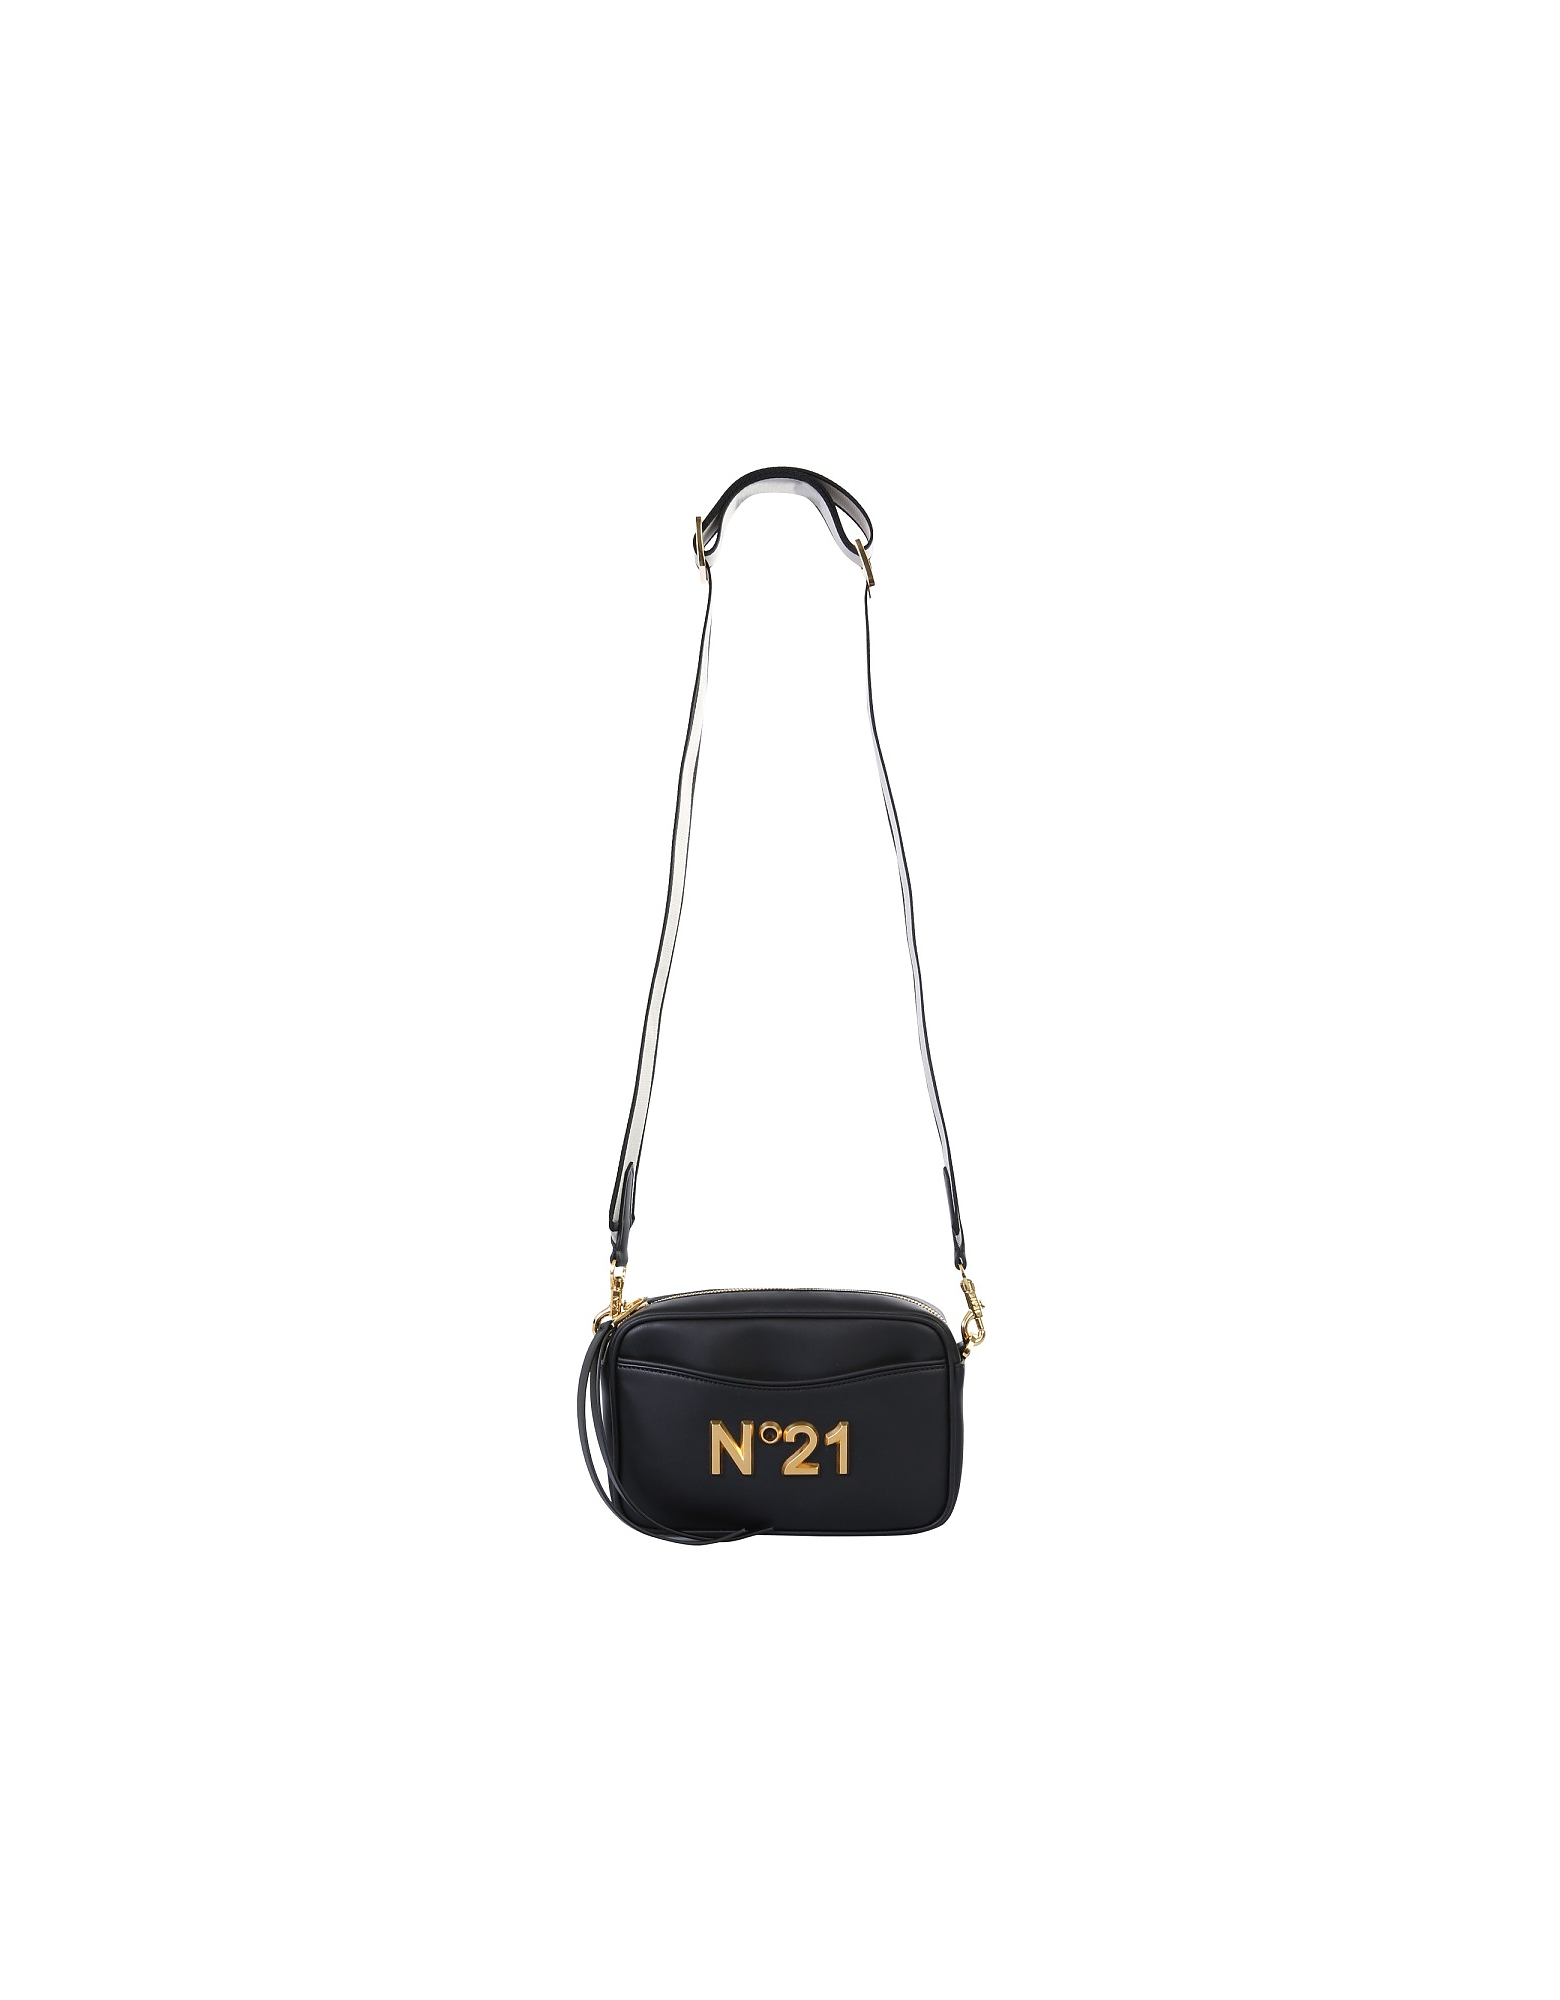 N°21 SHOULDER BAG WITH LOGO